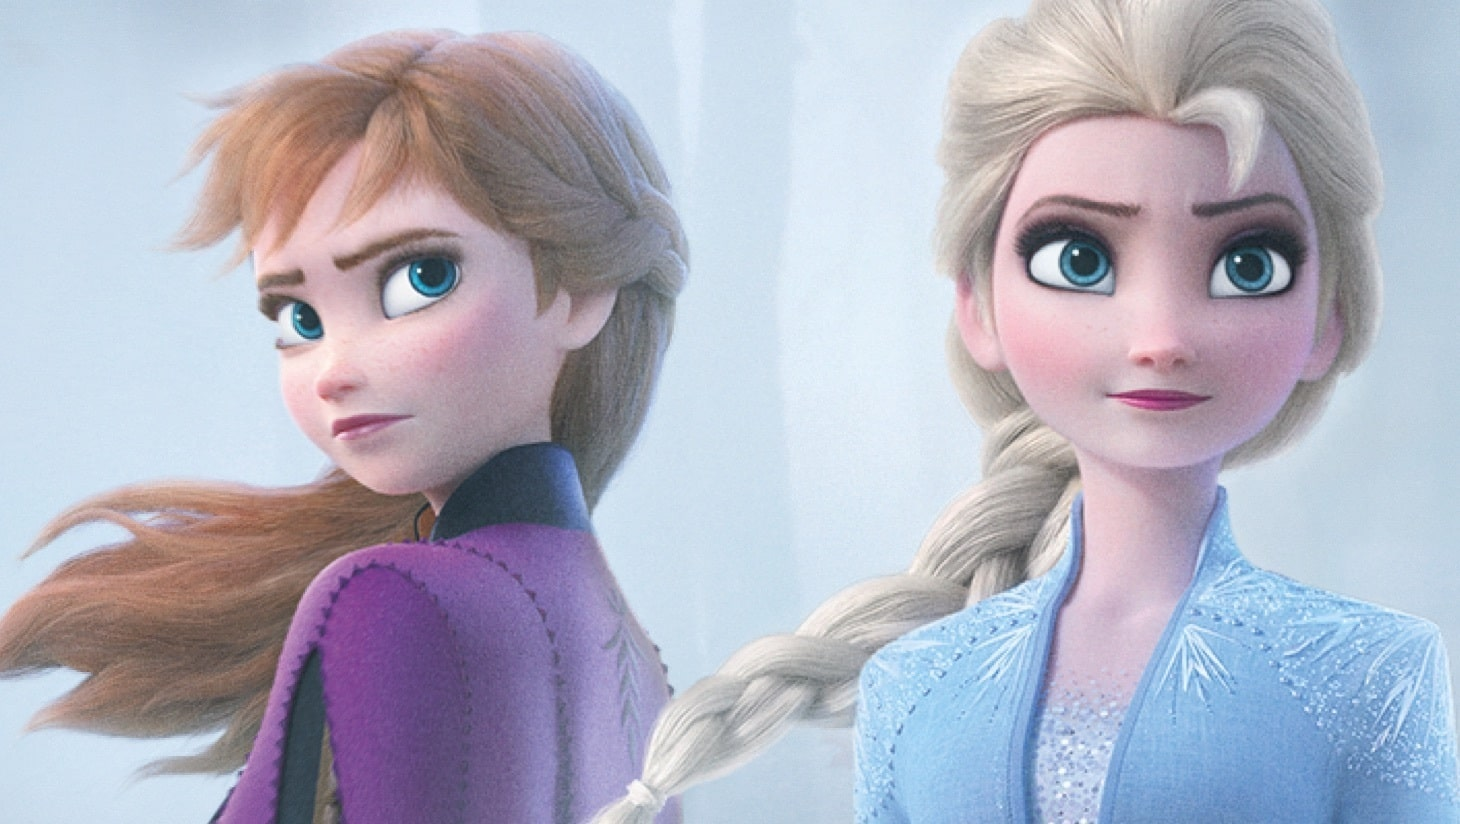 Still image of Anna and Elsa from Frozen 2